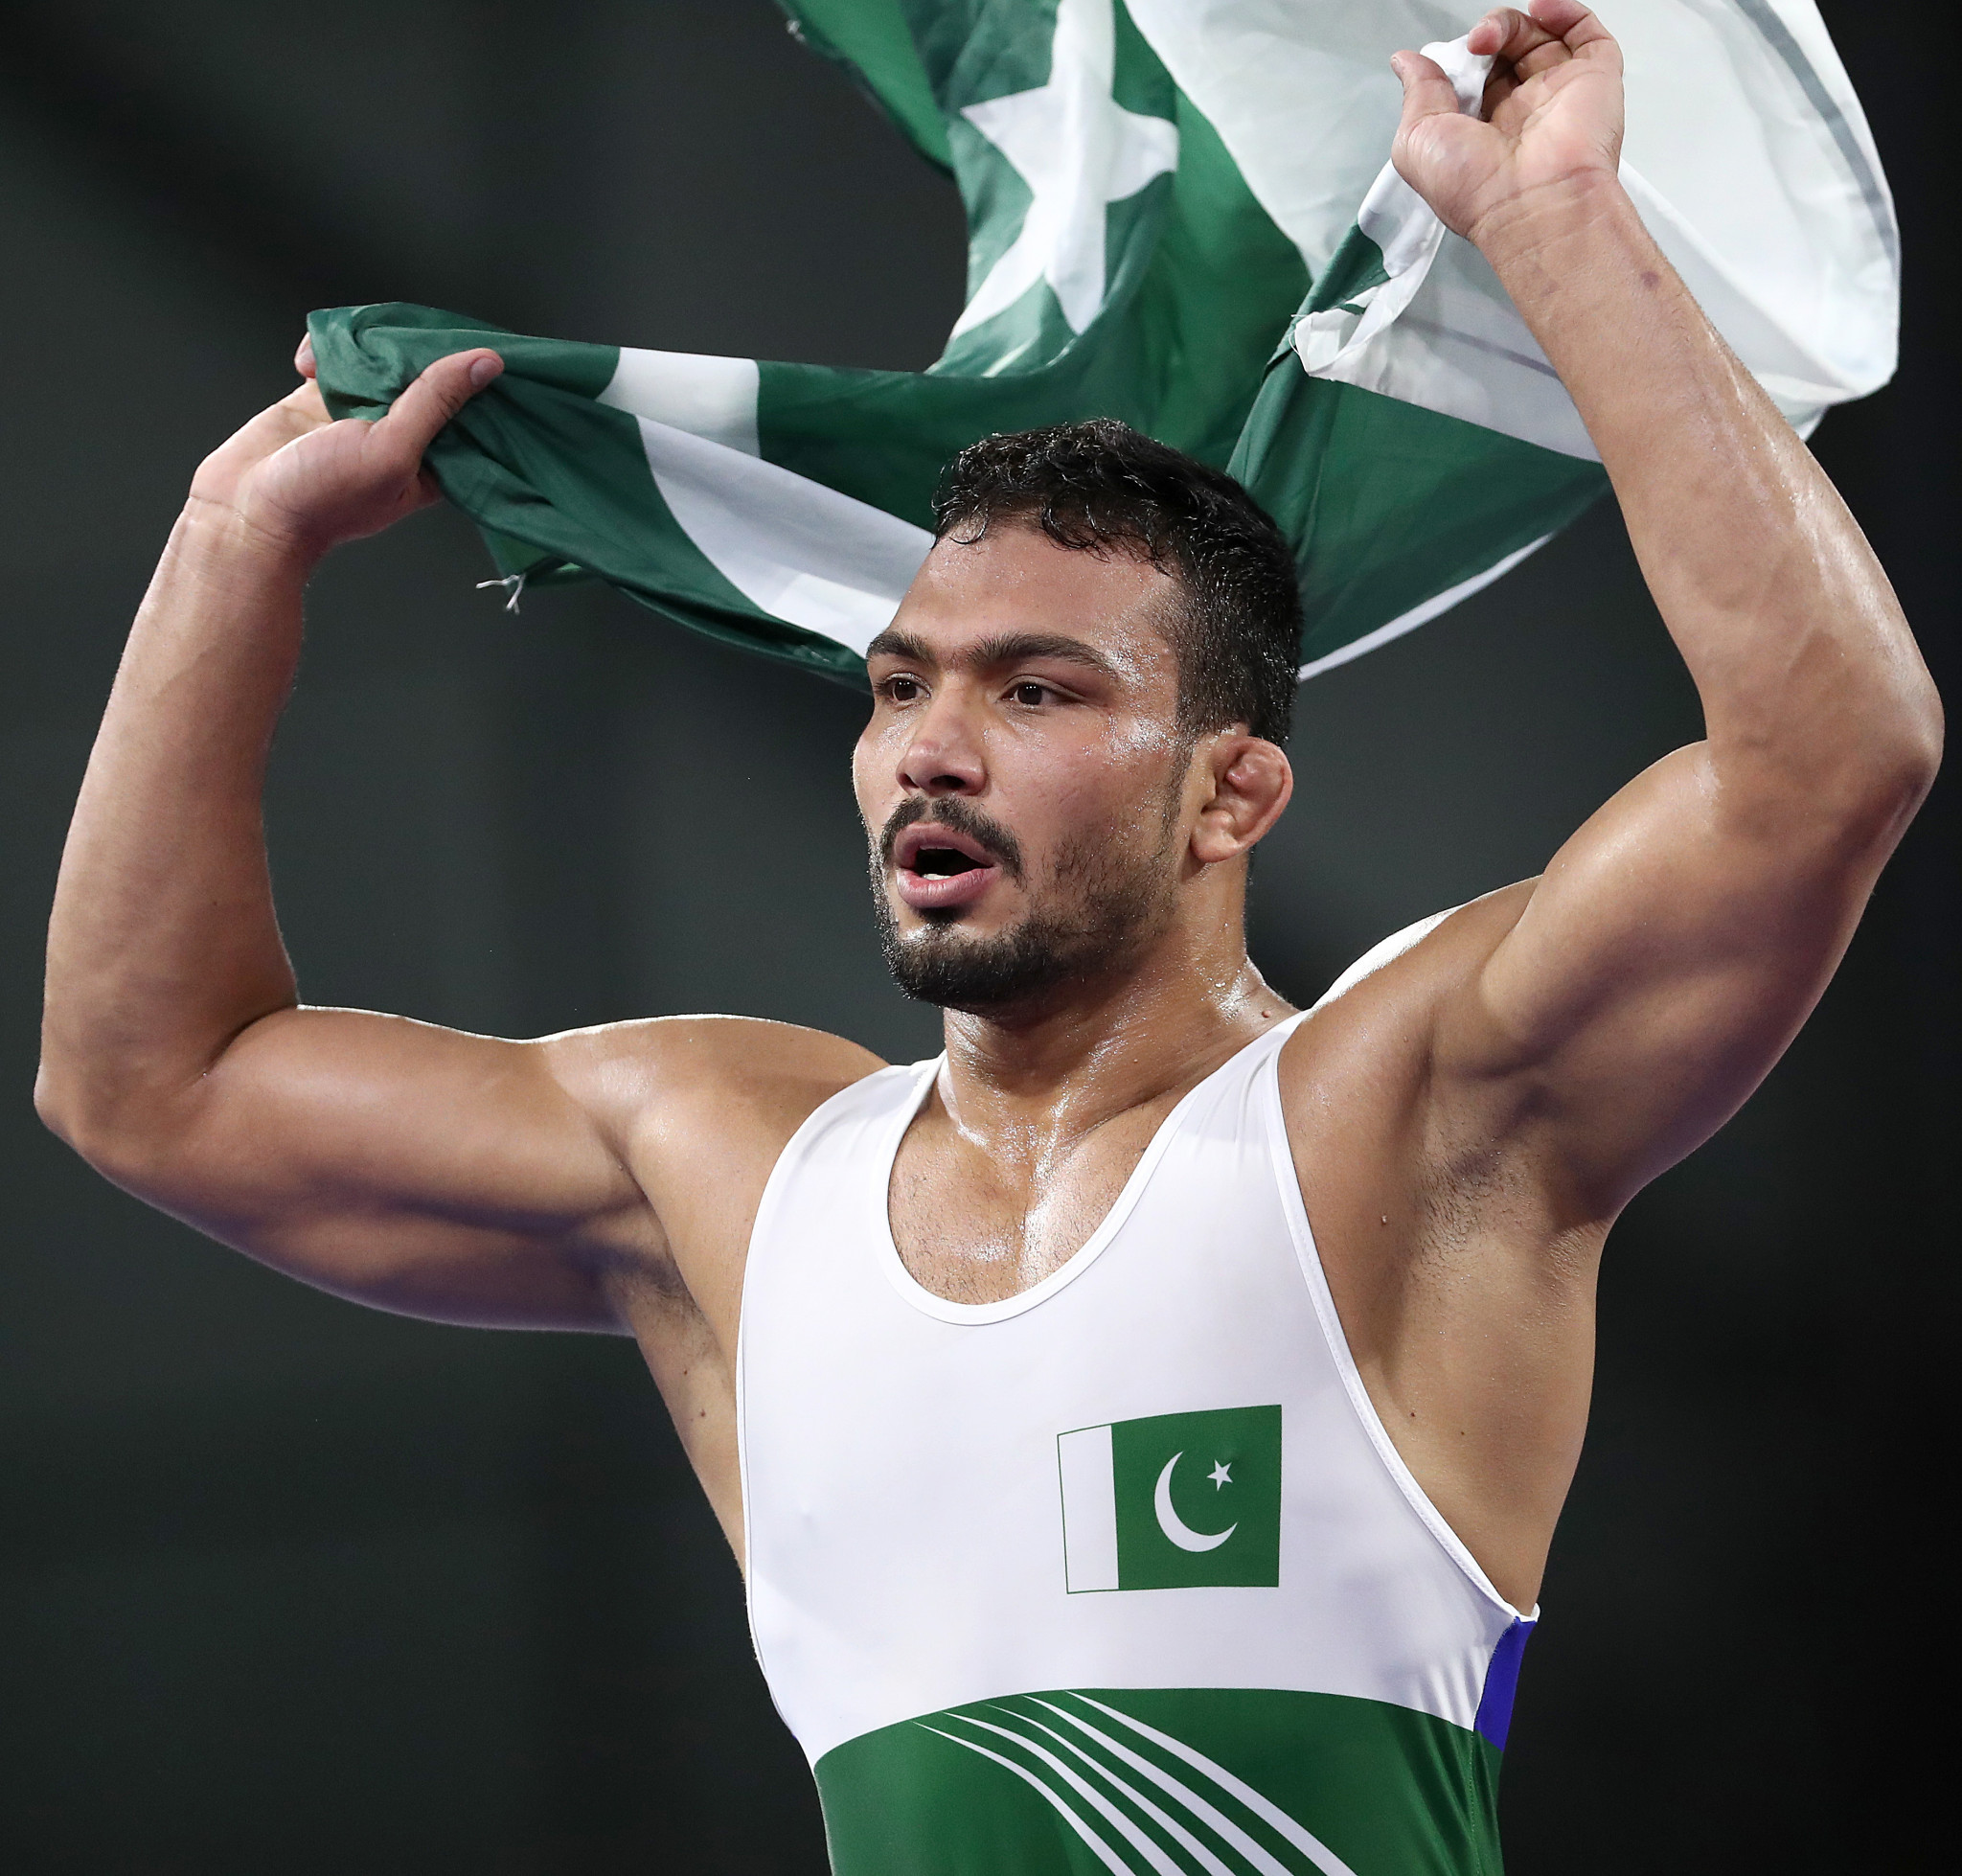 Pakistan's Muhammad Inam tasted victory in the men's 86kg freestyle event to secure his country's first gold medal of Gold Coast 2018 ©Getty Images